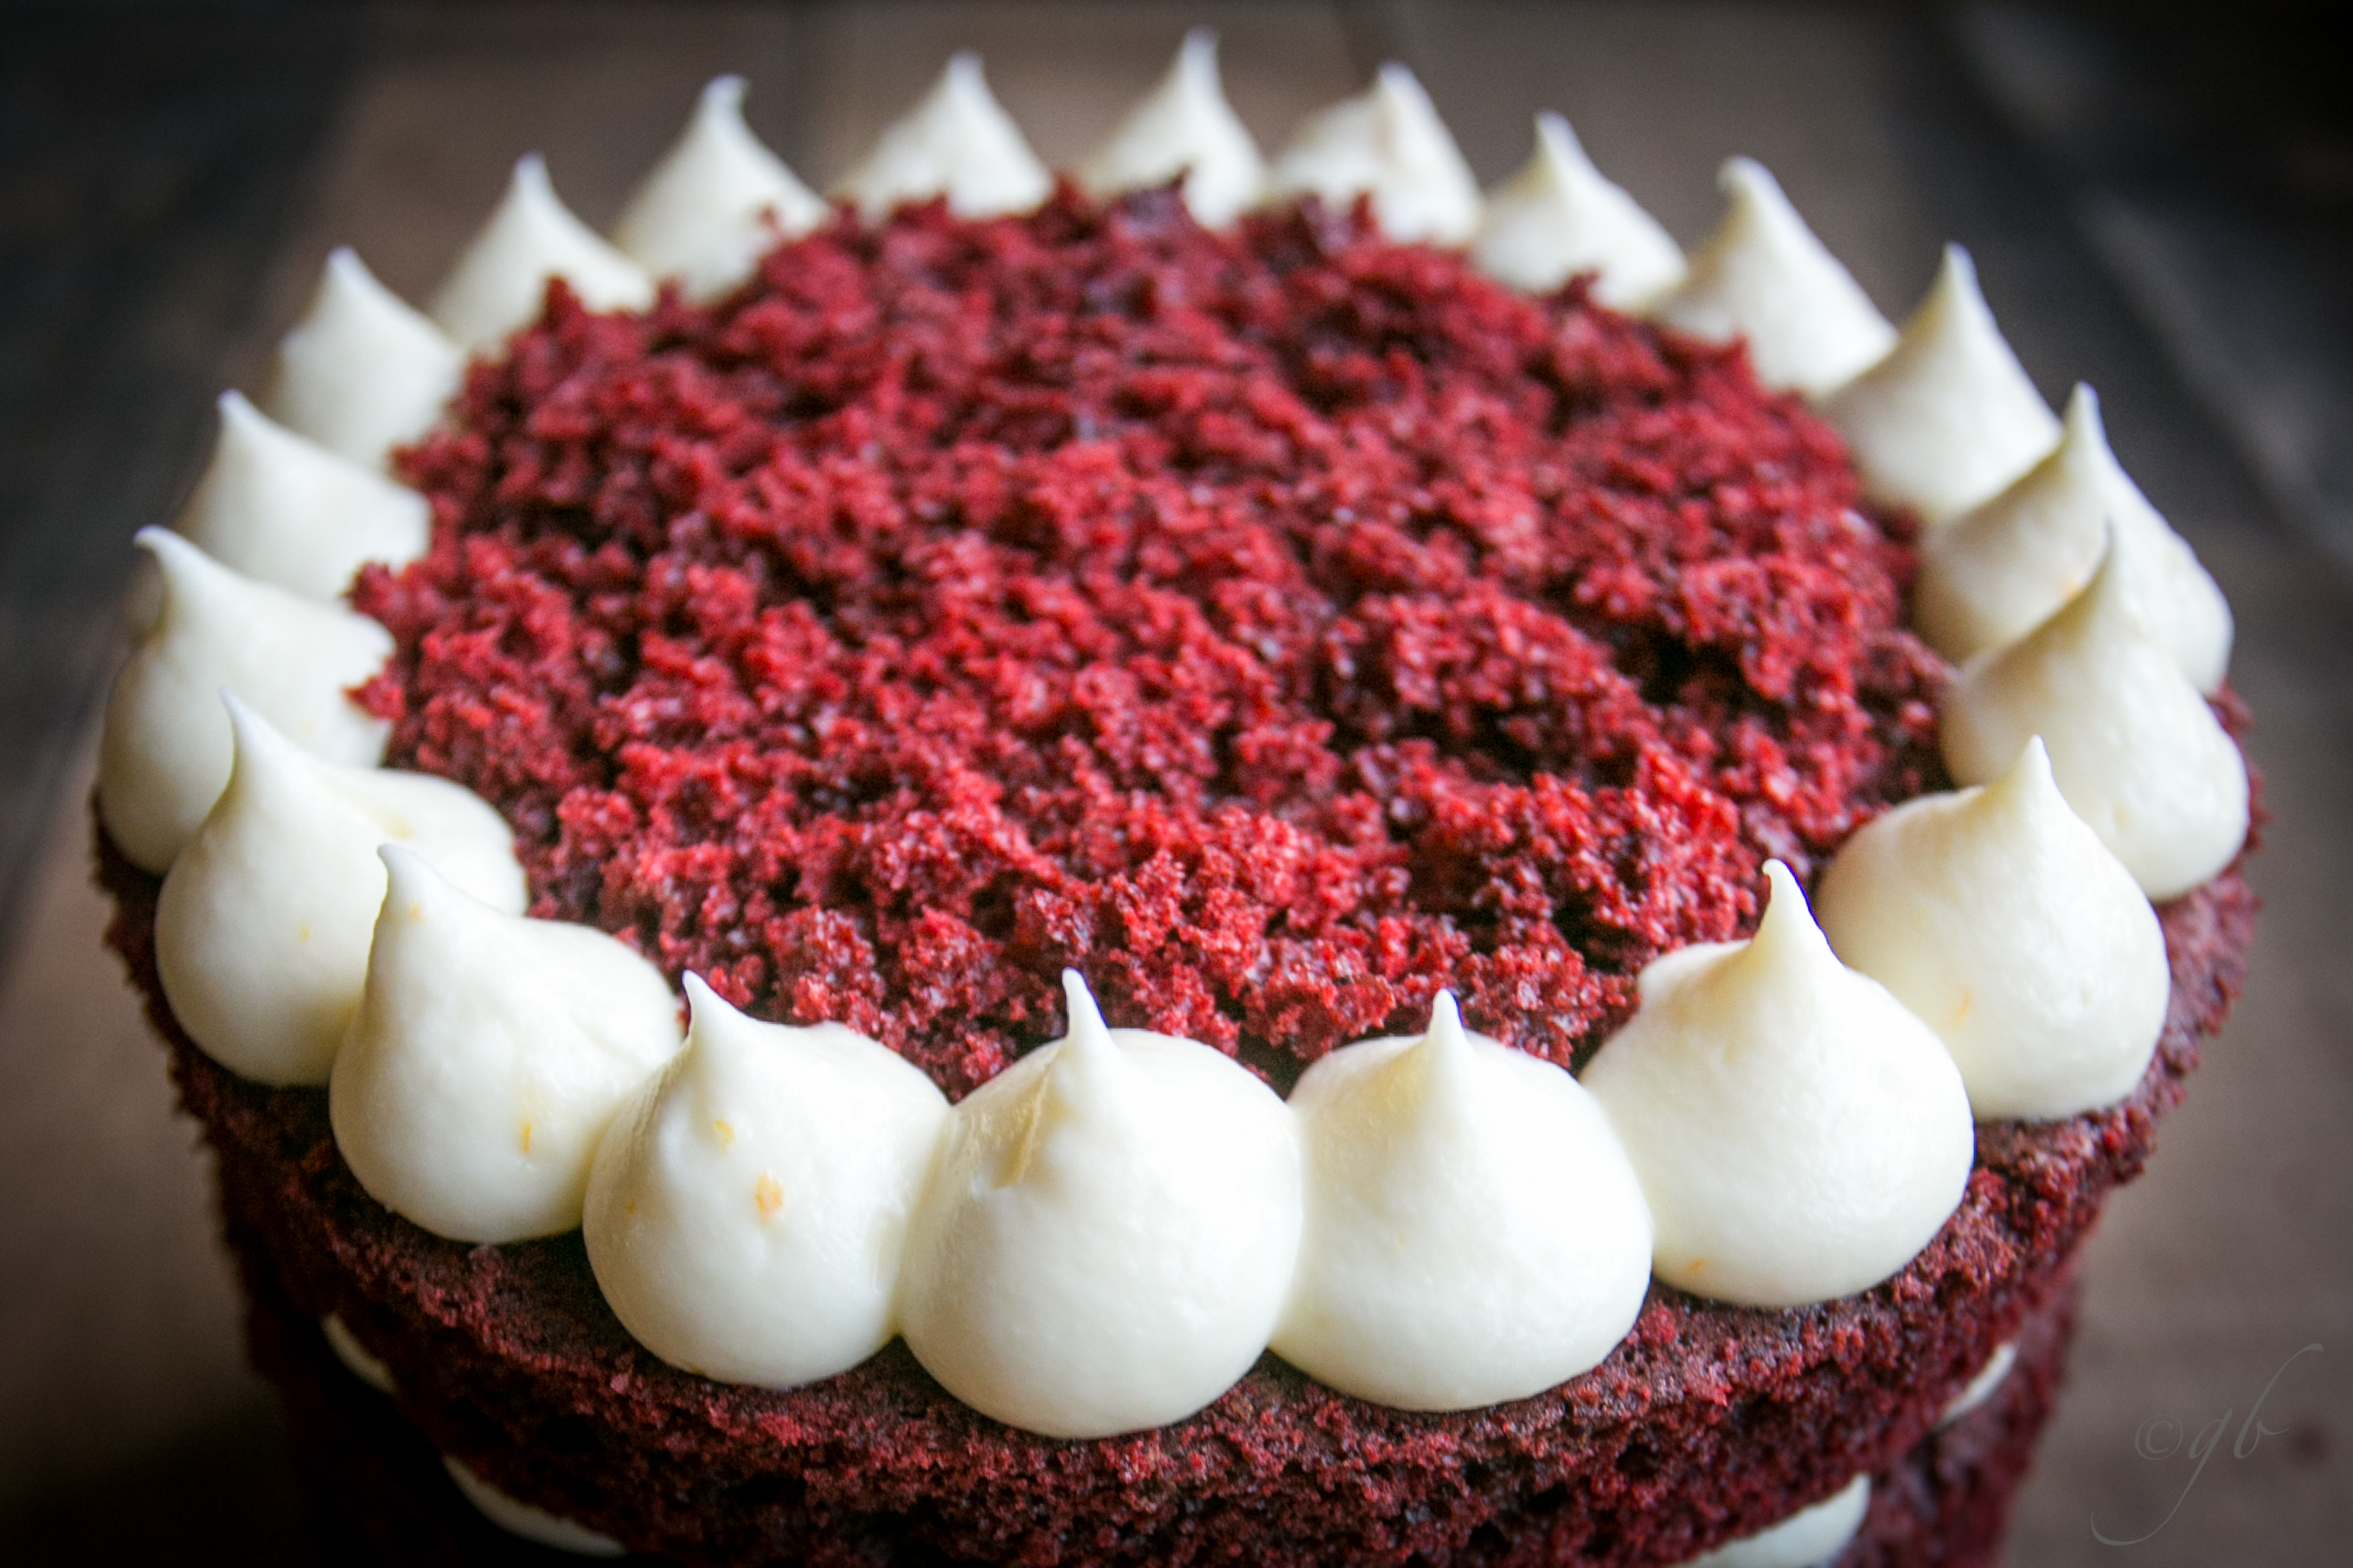 Red Velvet cake, the american recipe with cream cheese frosting